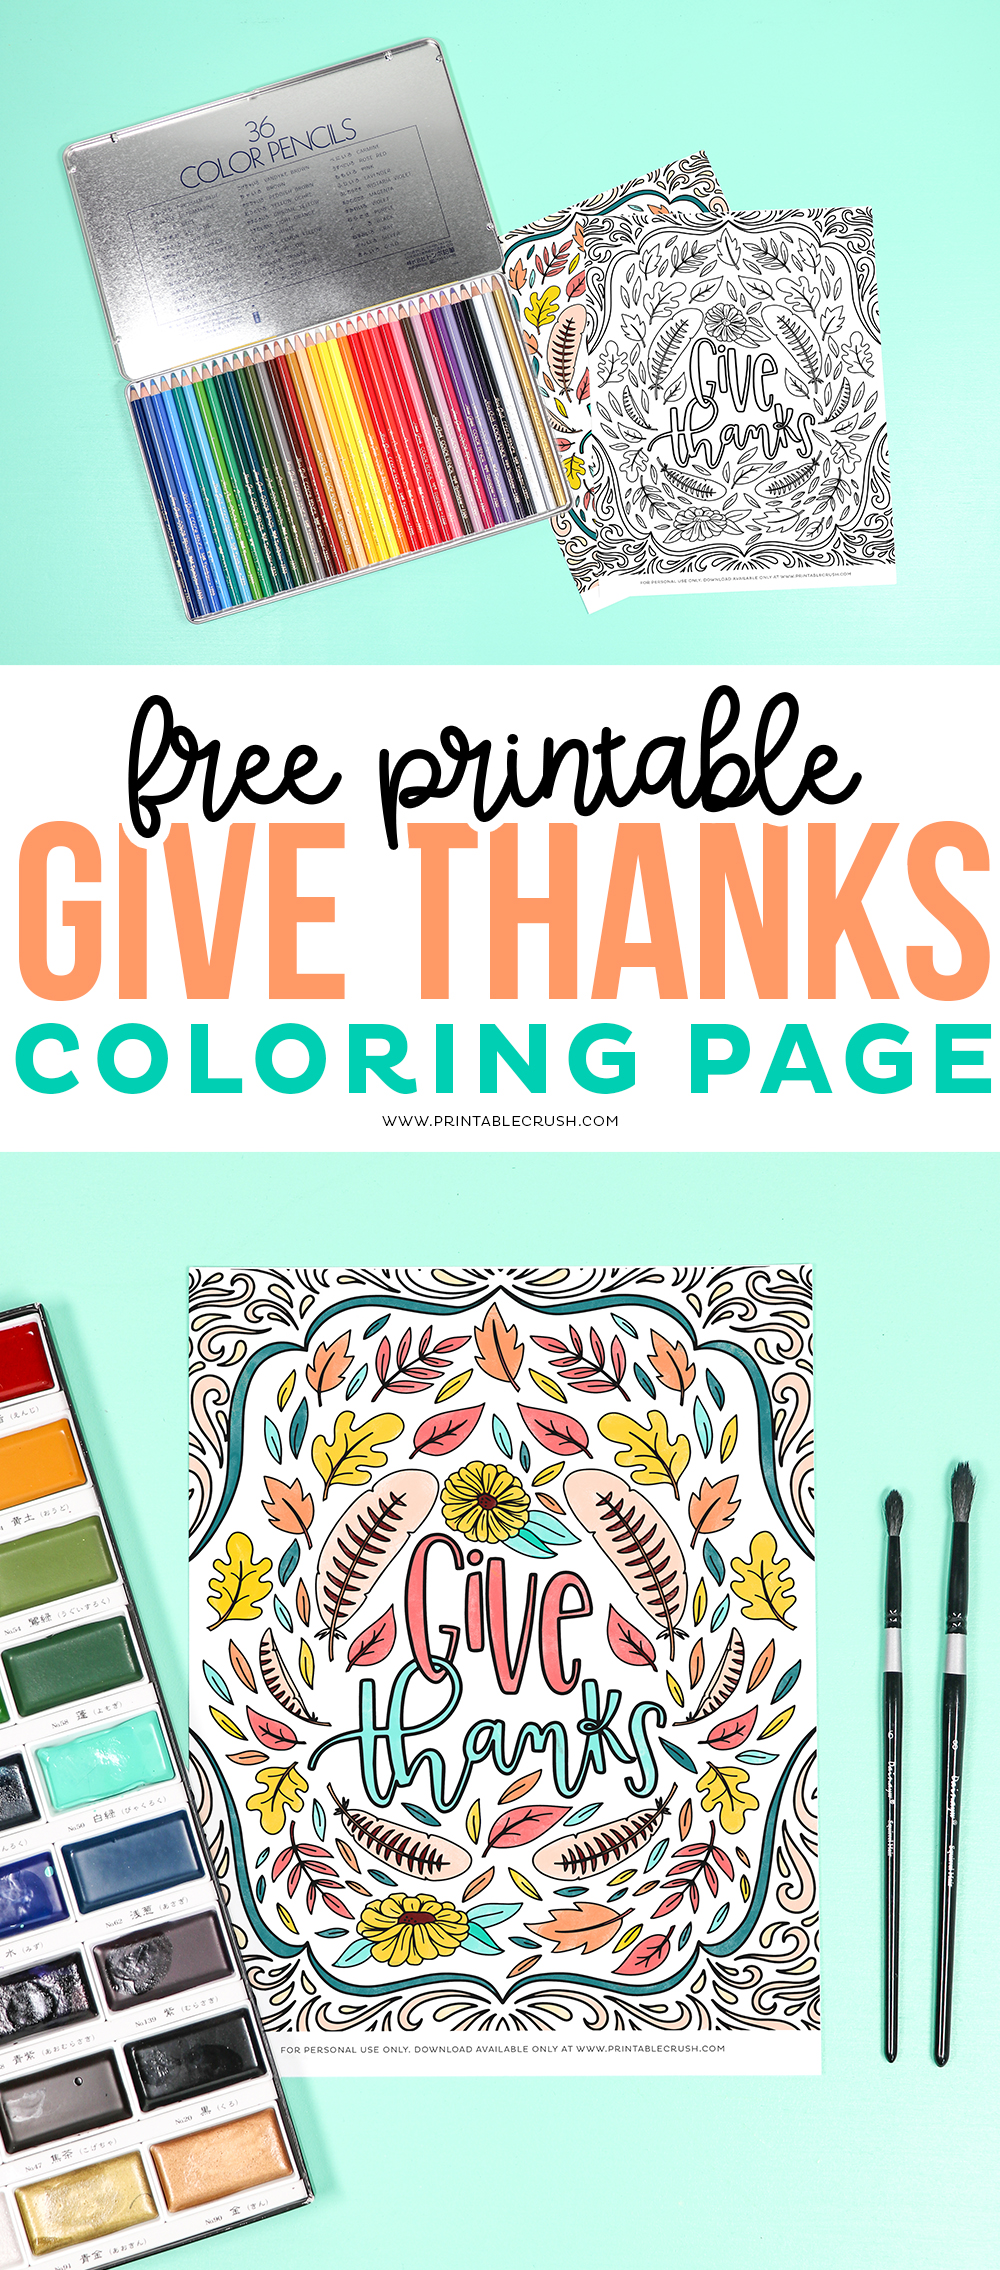 Give Thanks Coloring Page Free Printable - Printable Crush